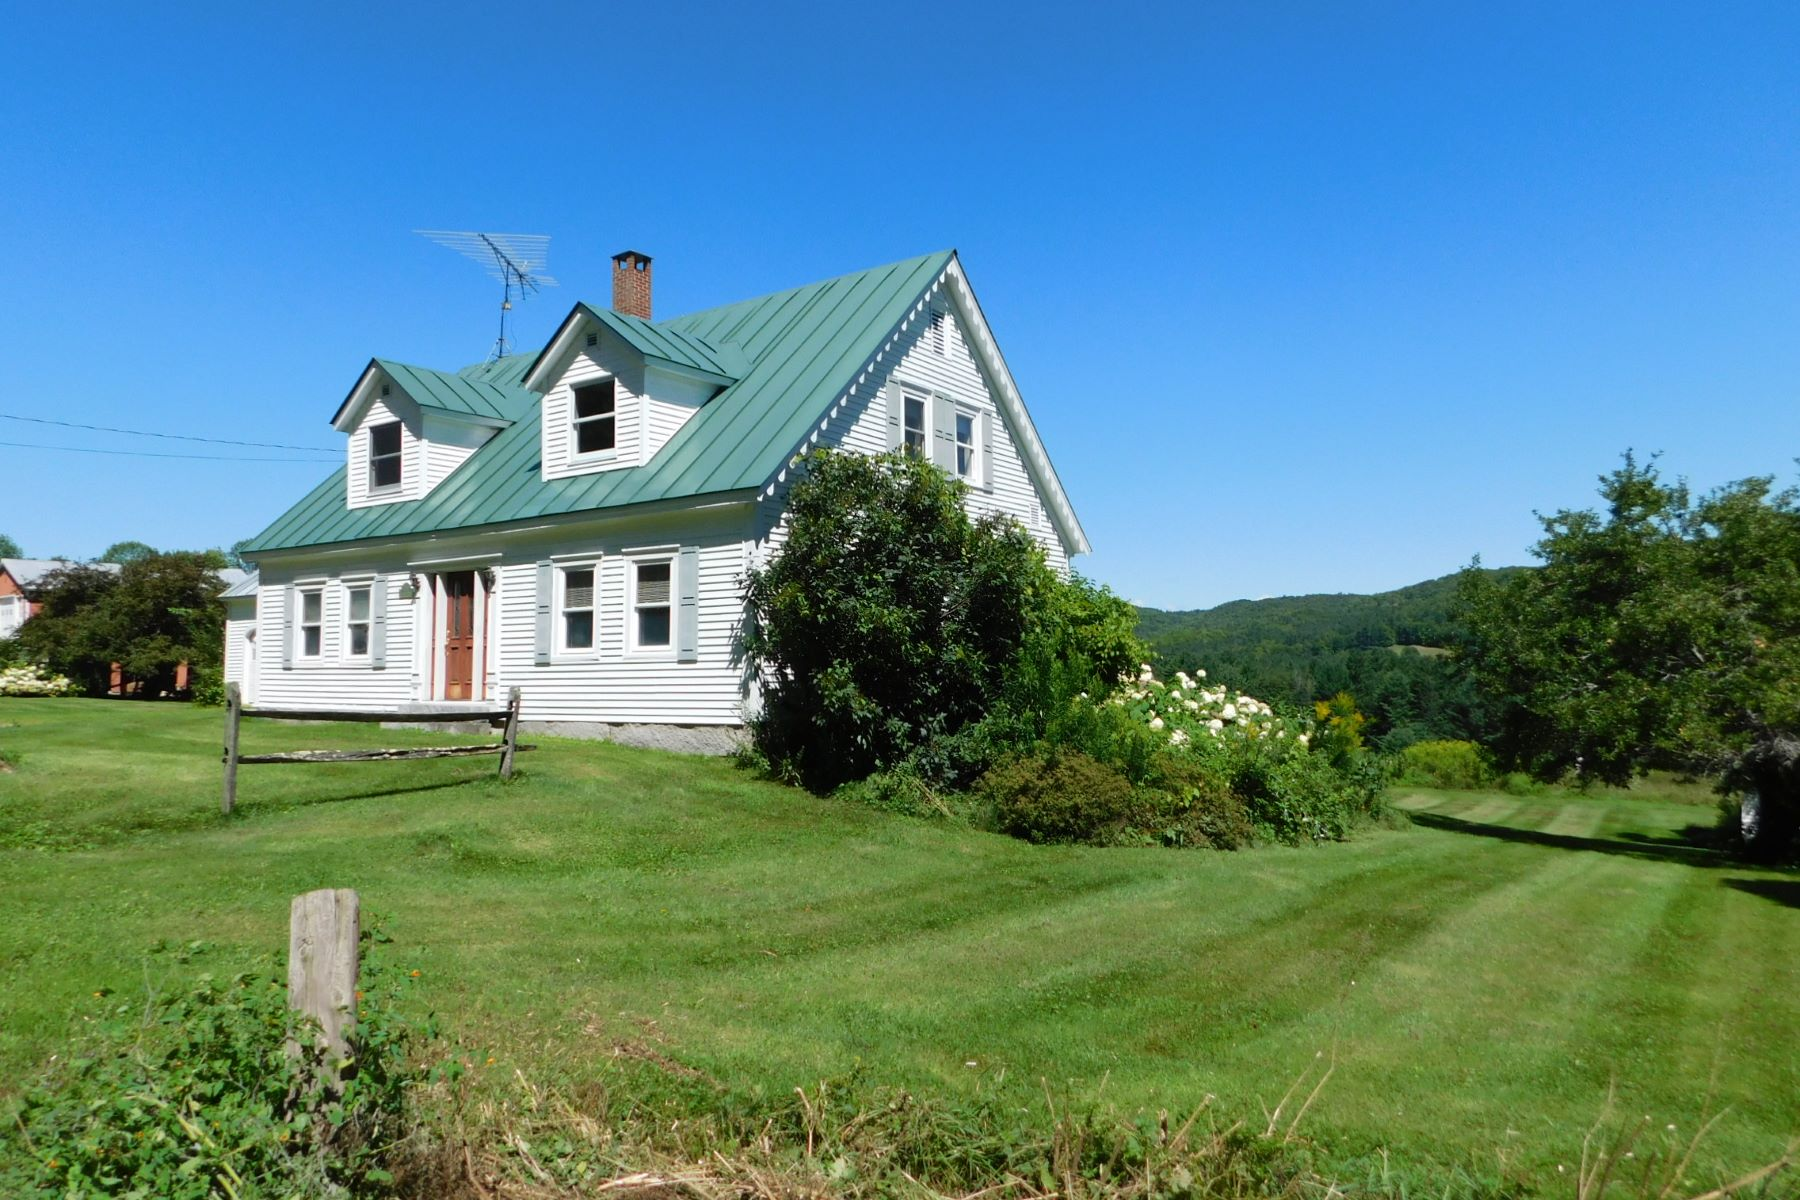 Single Family Home for Sale at Home, Hearth and Harvest 1738 Cookeville Rd Corinth, Vermont 05039 United States